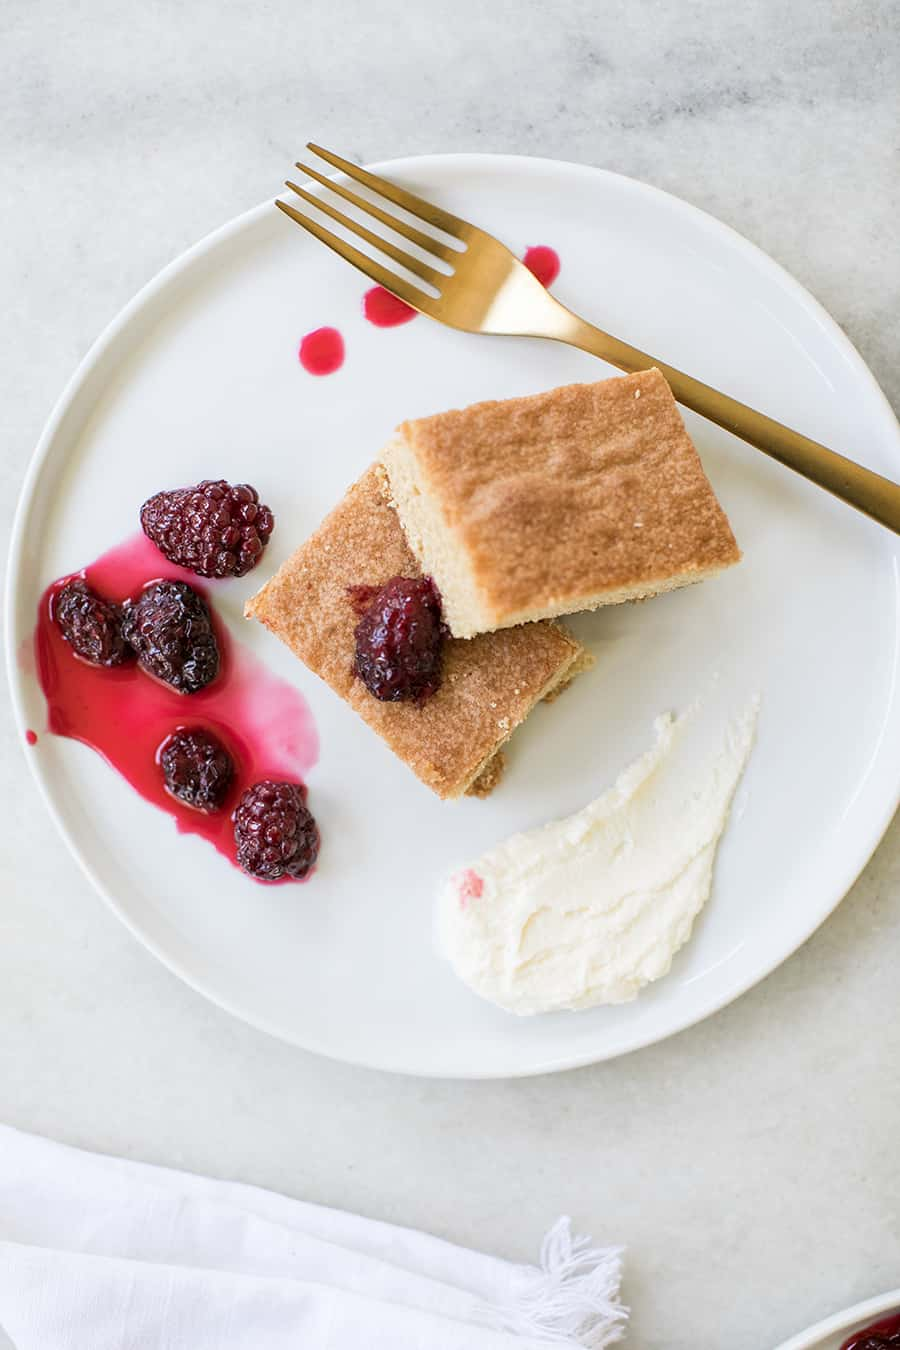 Brown sugar cake on a white plate with blackberries.